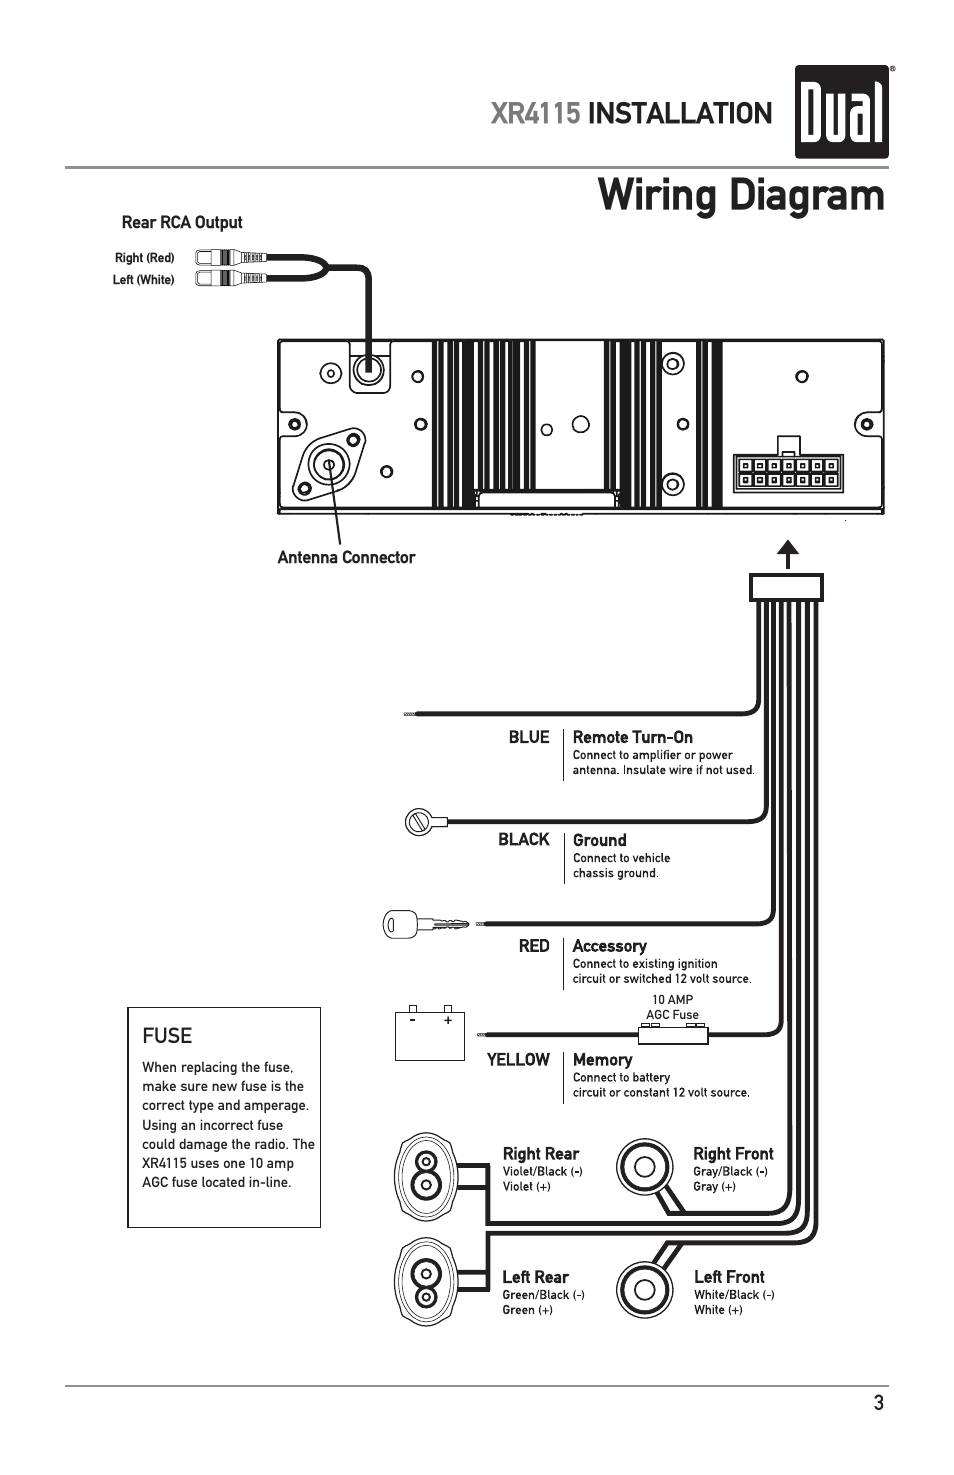 Dual Plug Wiring Diagram For Schematic Diagrams Electric Oven Wire Harness Xr4115 34 Electrical Symbols